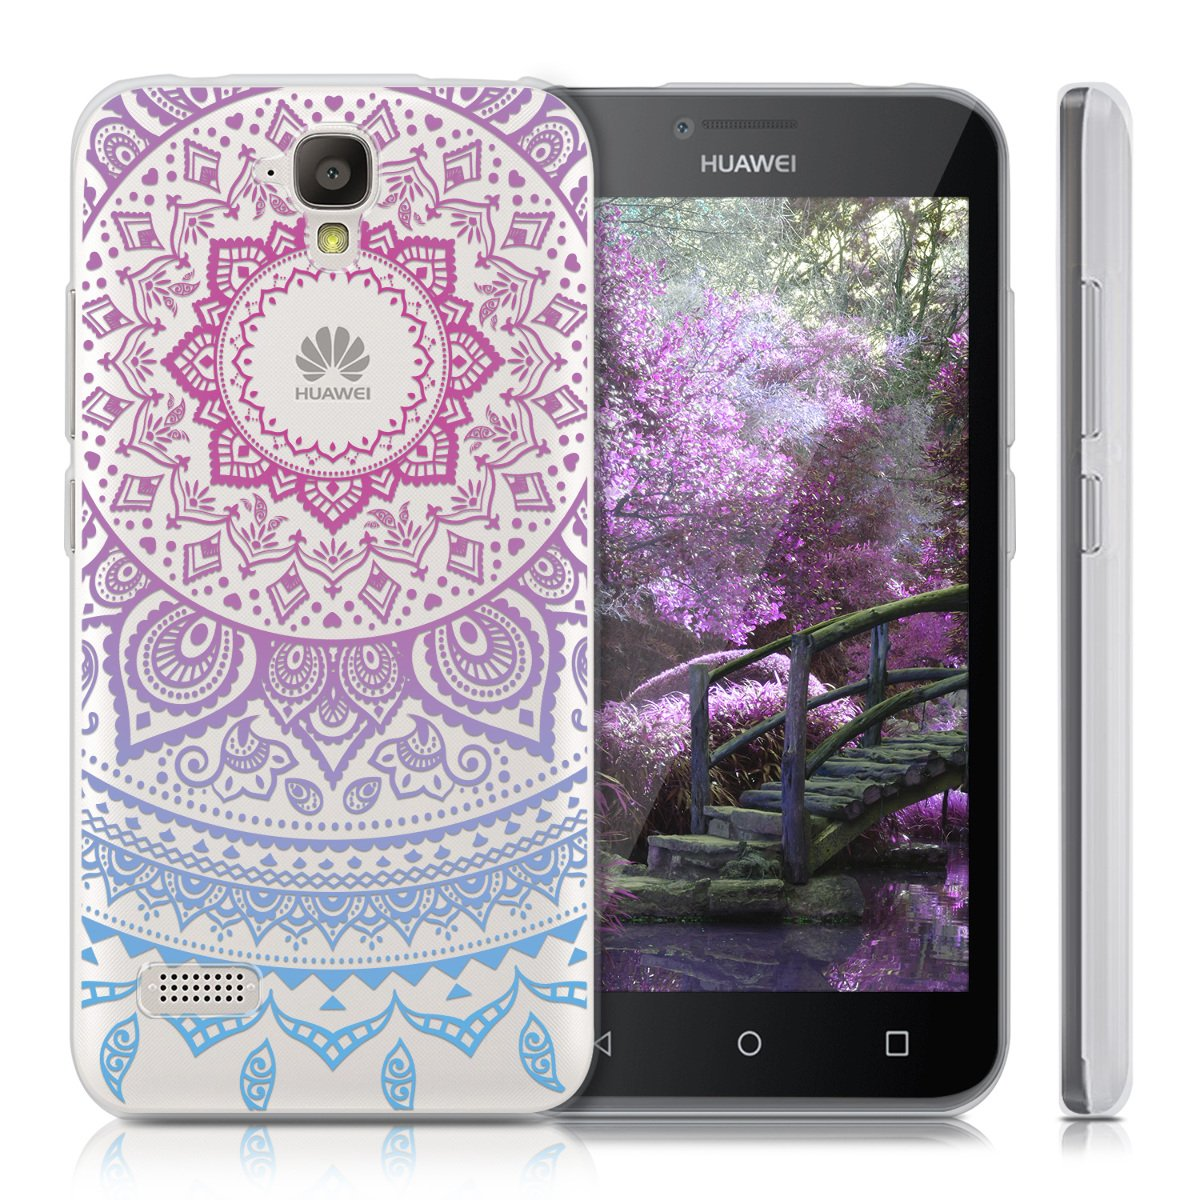 kwmobile TPU Silicone Case for Huawei Y5 - Crystal Clear Smartphone Back Case Protective Cover - Blue/Dark Pink/Transparent